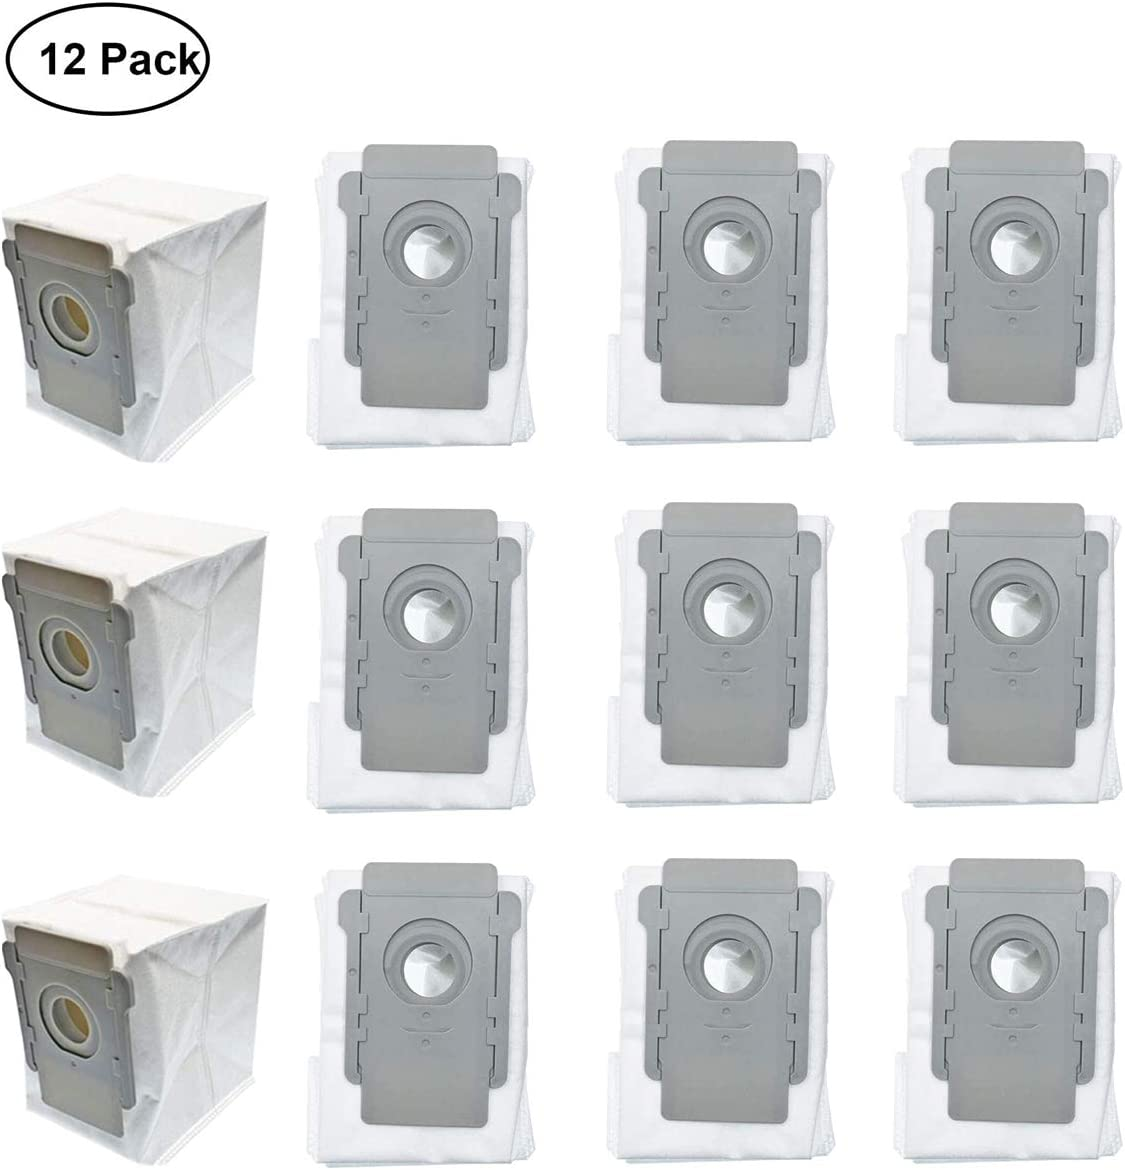 Garbage fighter Dust Bags Replacement for iRobot Roomba i7 i7+ i7 Plus s9 s9+ E5 E6 E7 Series Parts - 12 Pack Automatic Dirt Disposal Bags Replenishement for iRobot Vacuum Cleaner Accessories